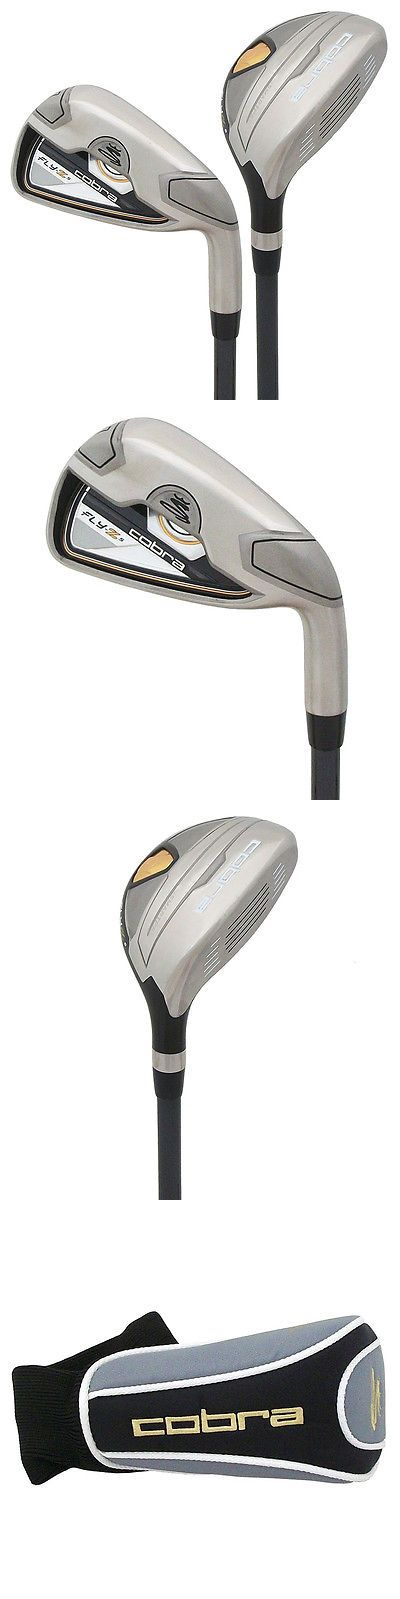 Golf Clubs 115280: New Cobra Golf Fly-Z S Irons Choose Flex And Set Composition -> BUY IT NOW ONLY: $199.99 on eBay!